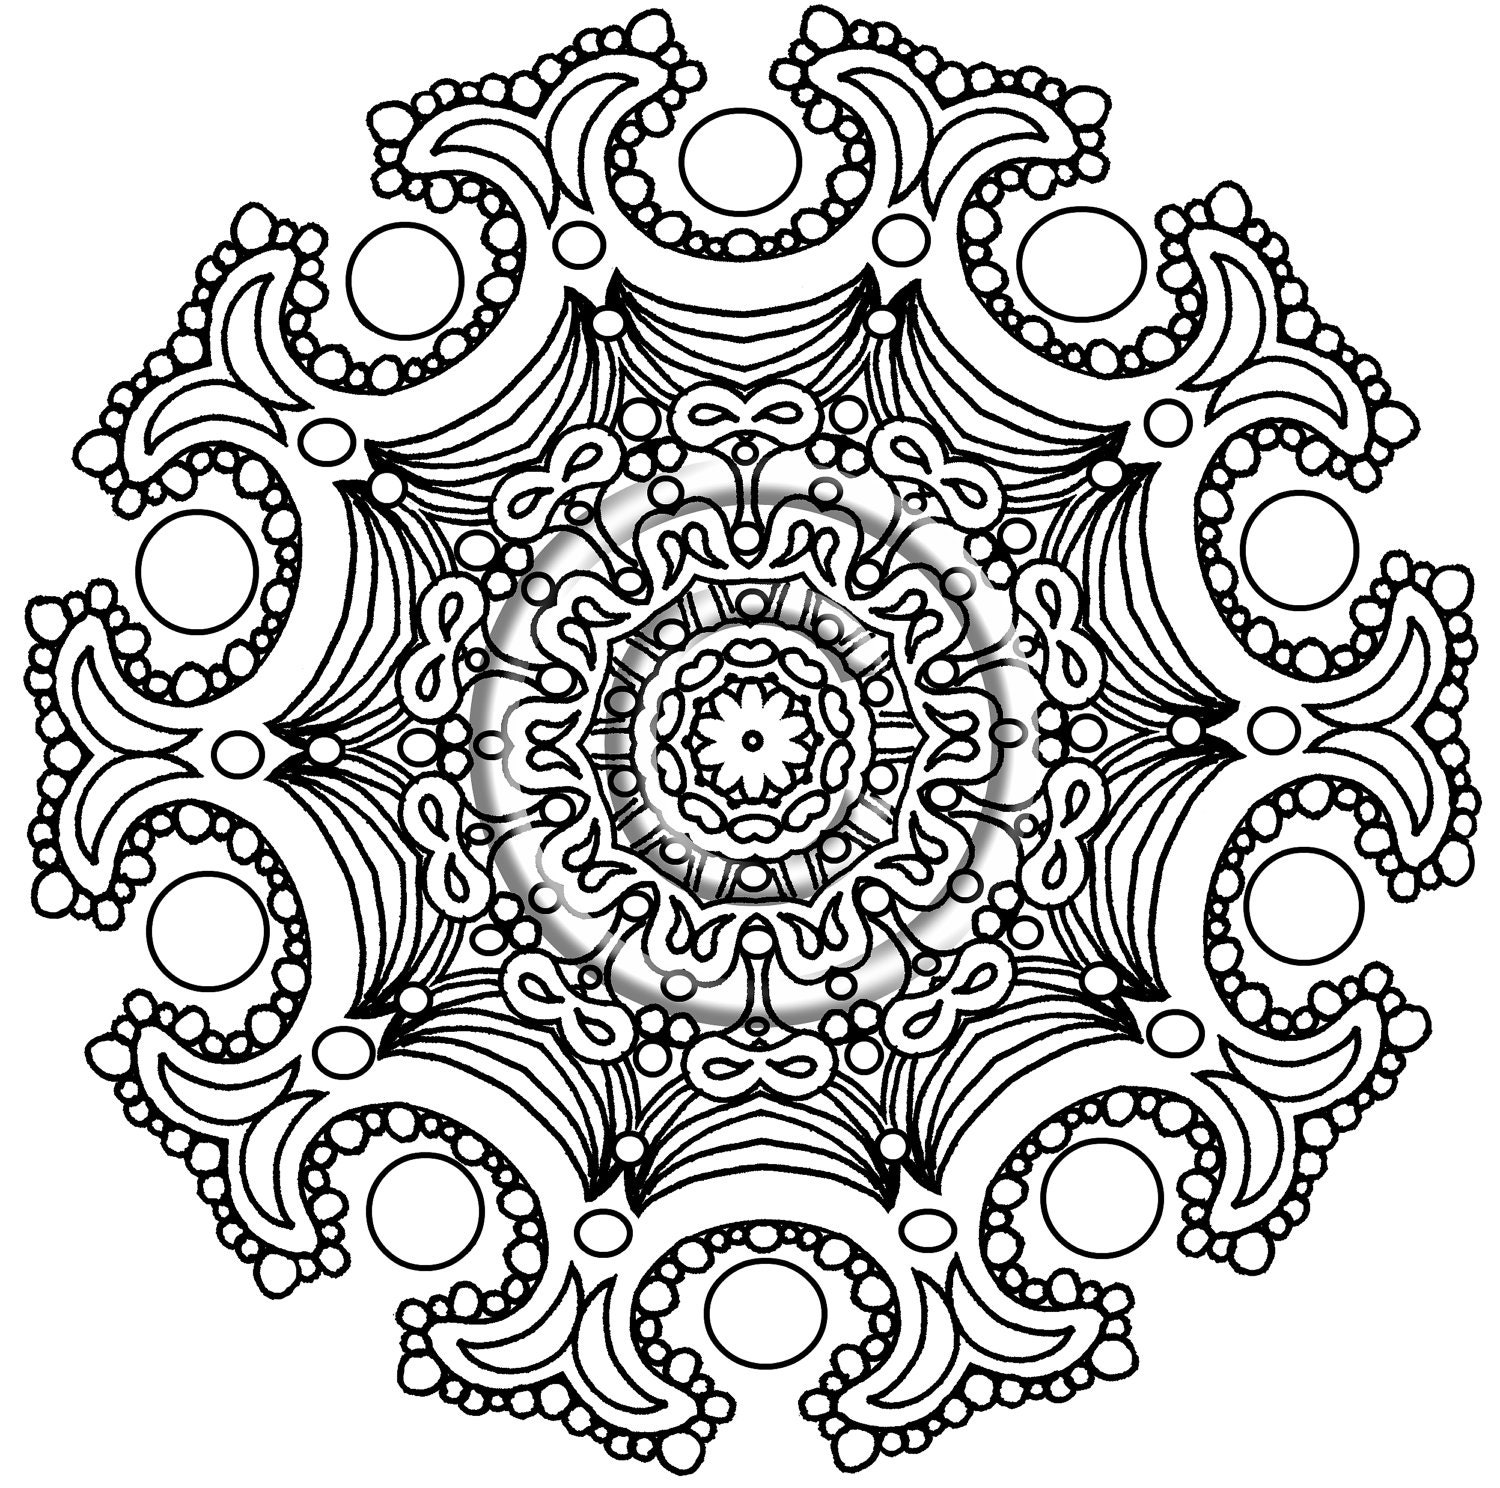 Hippie Coloring Pages For Adults : Hippie coloring pages for adults